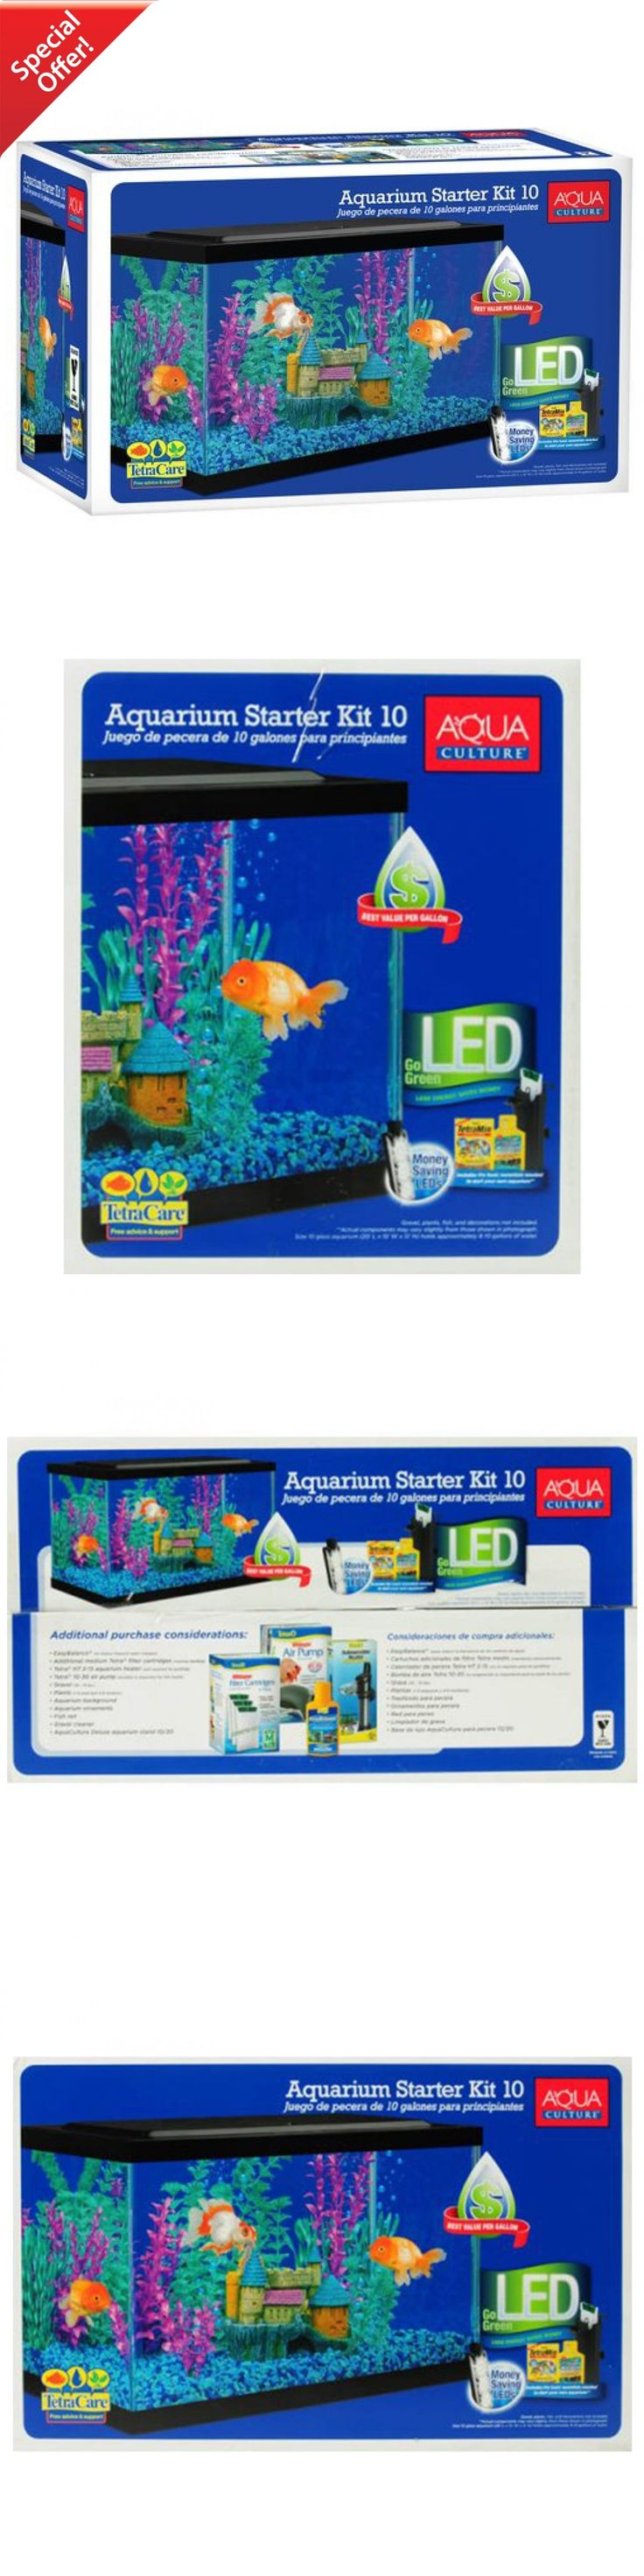 Fish tank heater 10 gallon - Aquariums And Tanks 20755 Aquarium Starter Kit Fish Tank 10 Gallon Led Light Aqua Culture